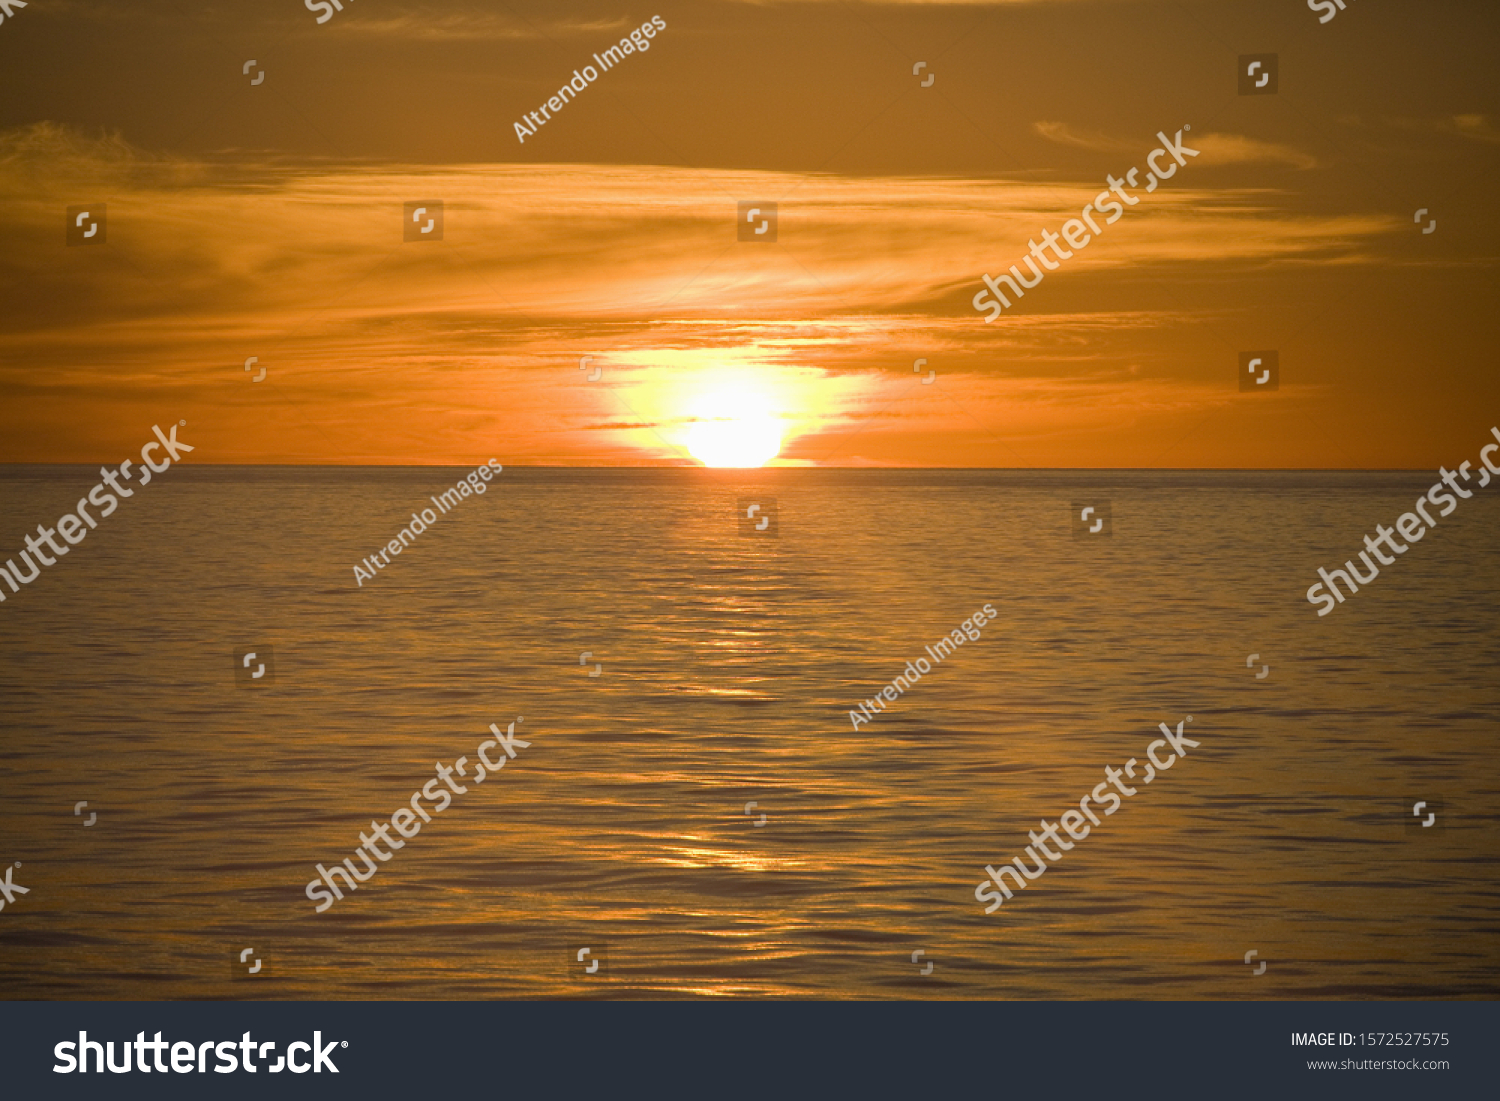 Sunrise, Gulf of California, Sea of Cortez, Mexico #1572527575